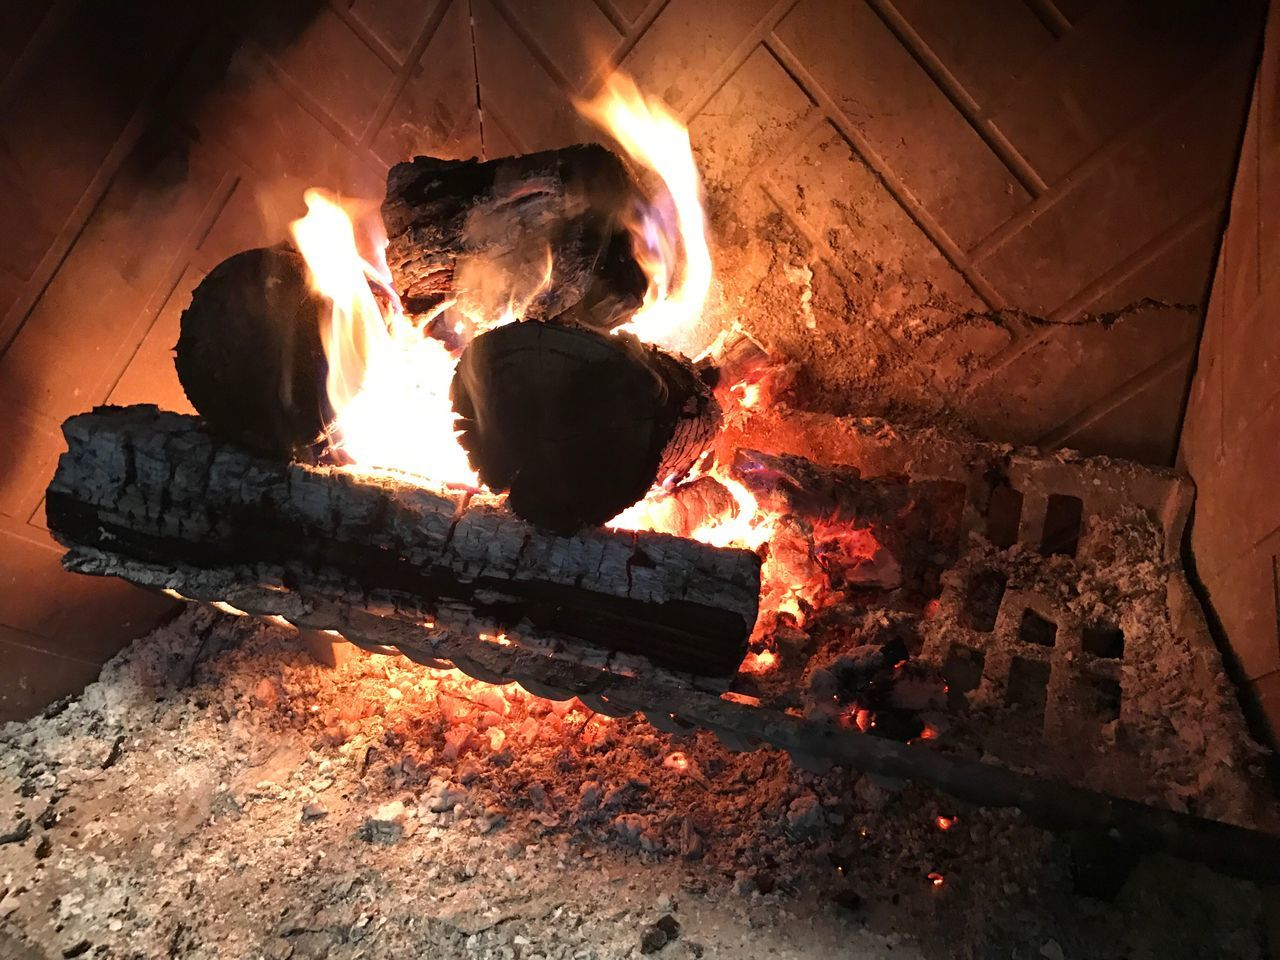 Thanksgiving Fireplace Heat - Temperature Fire - Natural Phenomenon Flame Burning Wood - Material Metal Industry No People Indoors  Close-up Working Night Molten